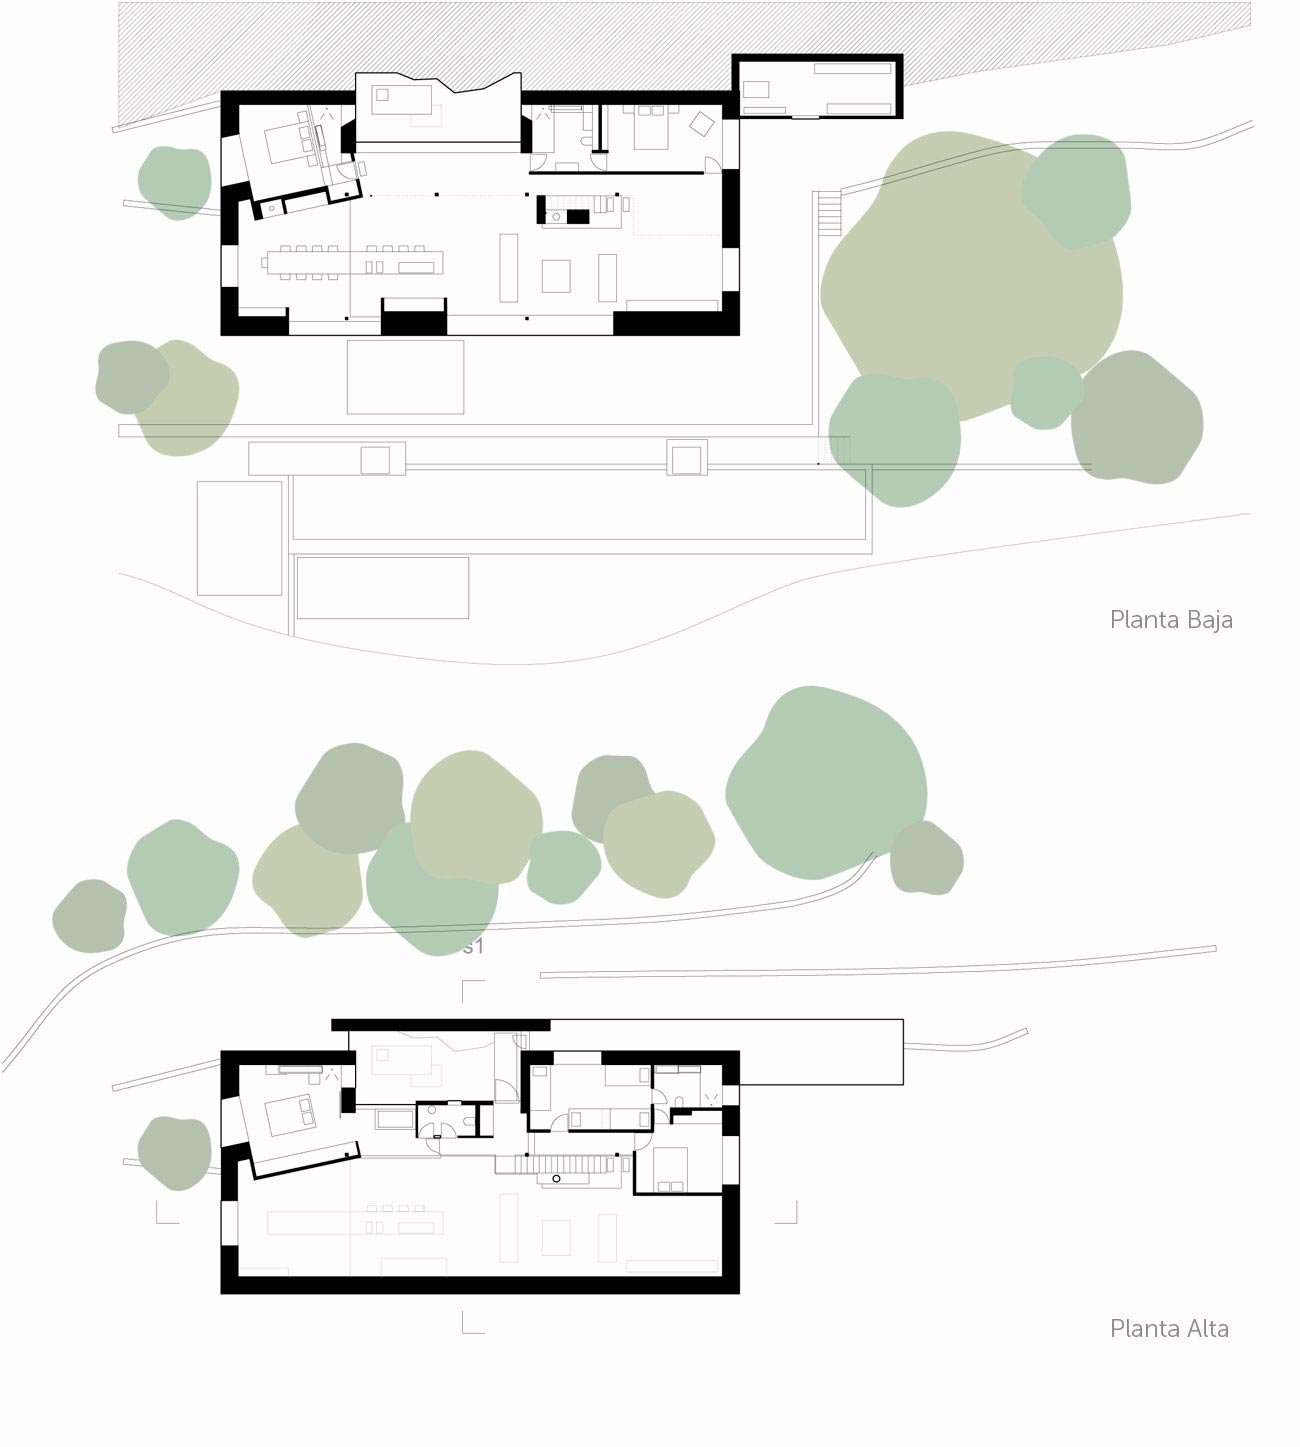 Floor Plans, Finca en Extremadura in Cáceres, Spain by ÁBATON